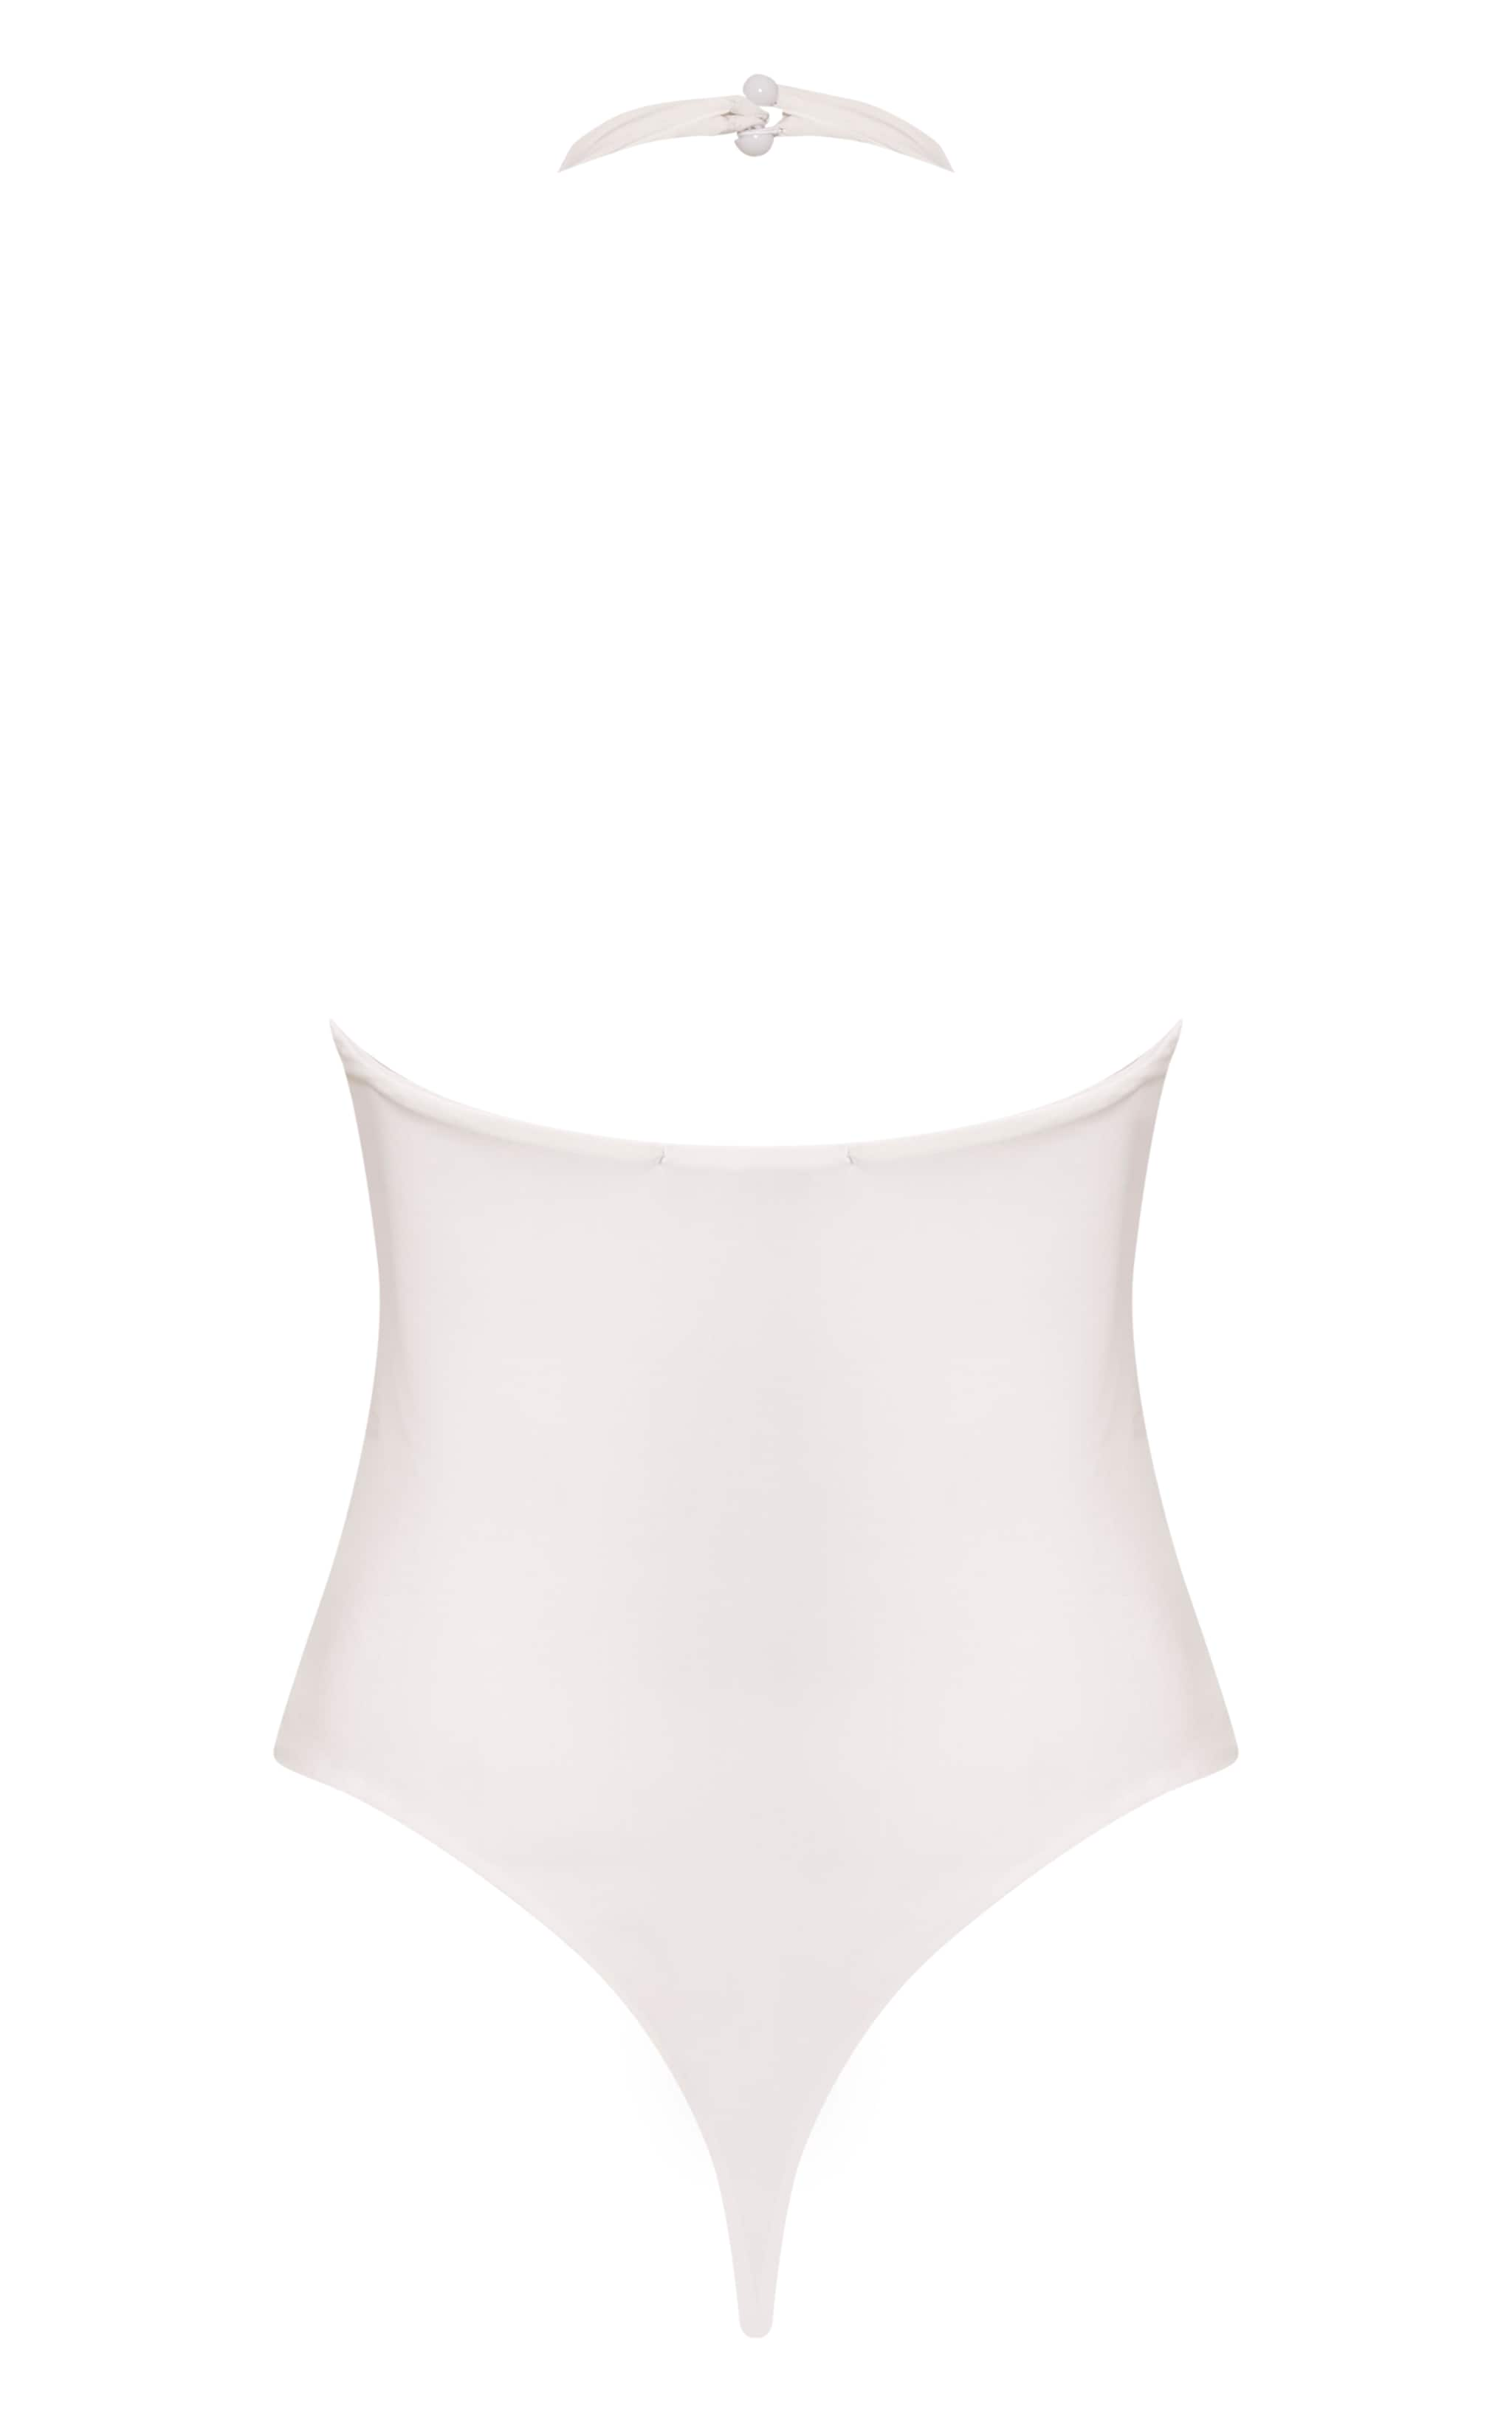 Riley Cream Slinky Halterneck Bodysuit 4